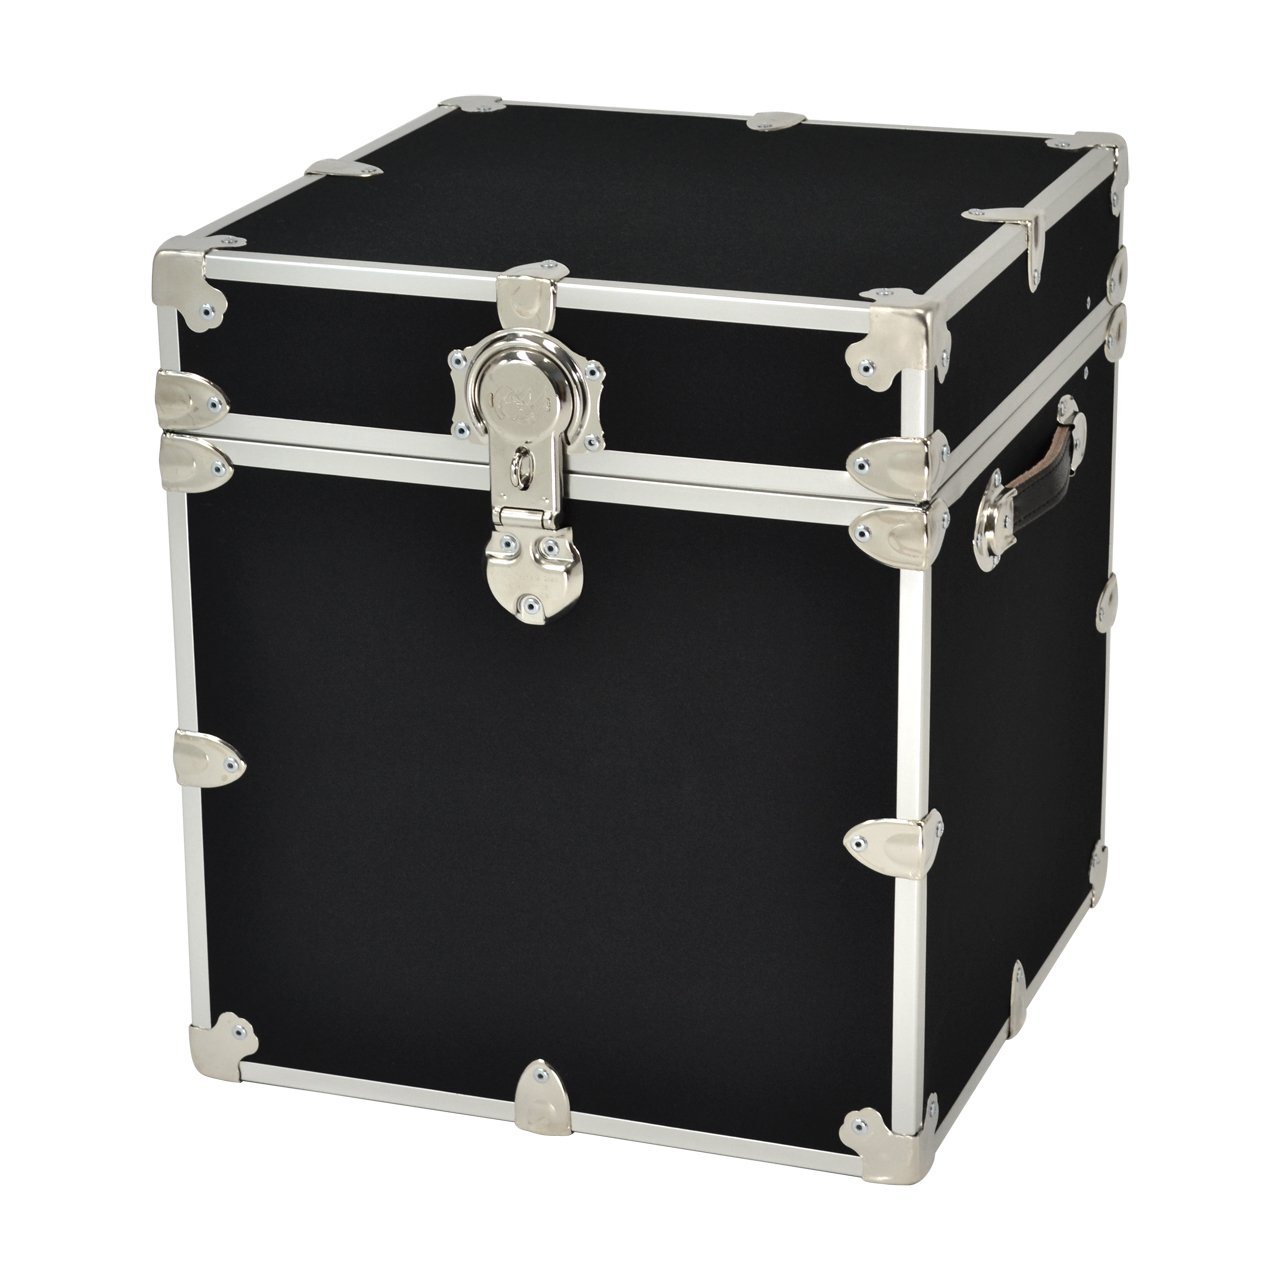 Rhino Trunk and Case Armor Trunk, Cube, Black by Rhino Trunk and Case